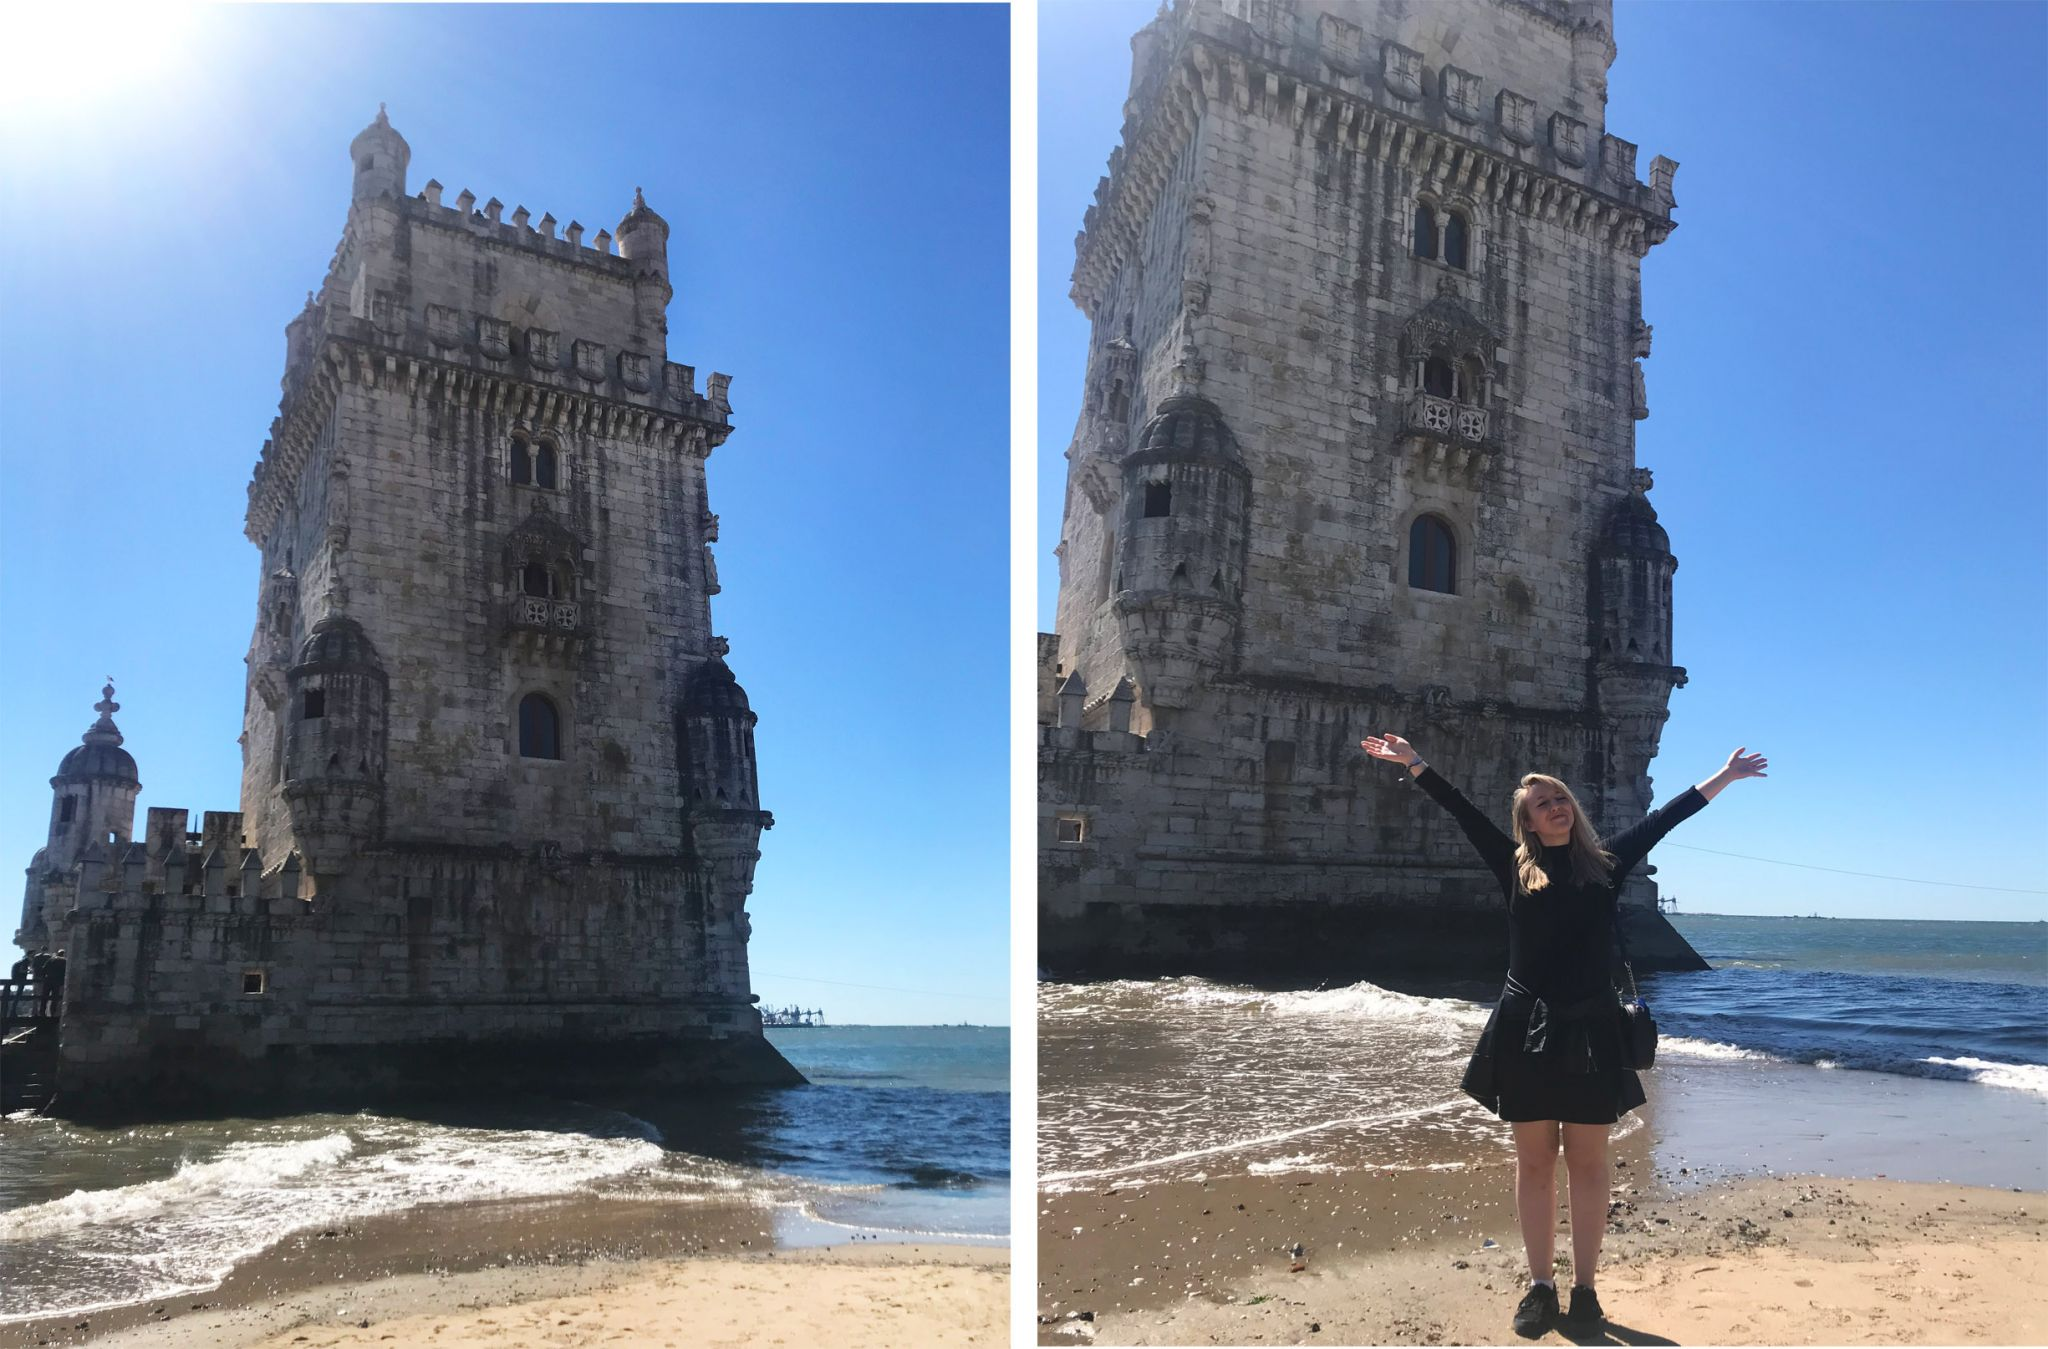 Belem Tower and Me